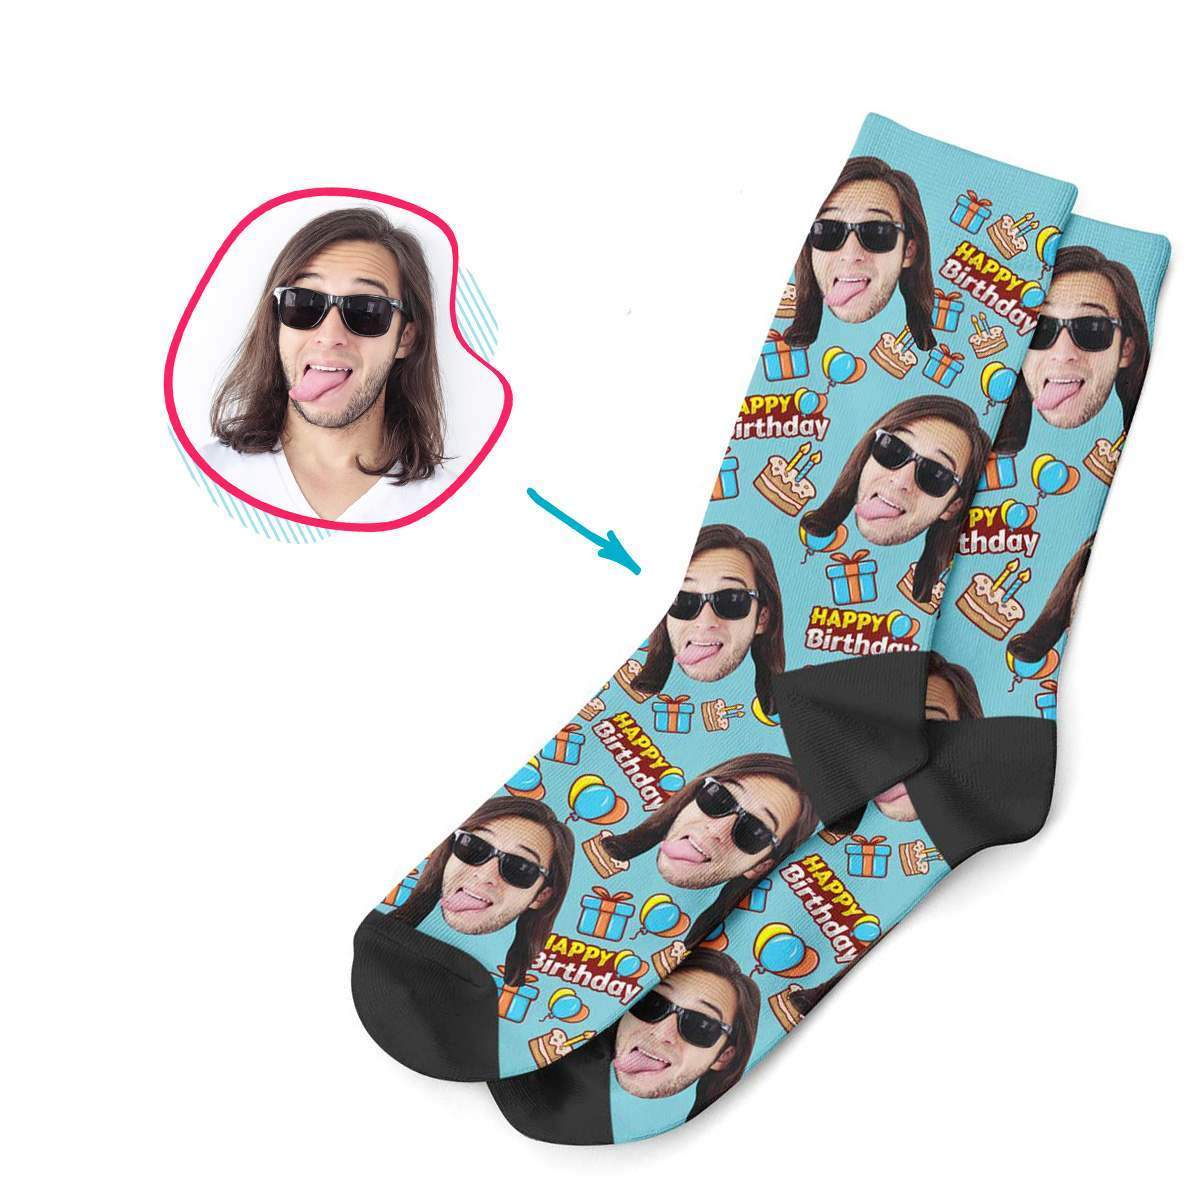 Birthday Personalized Socks